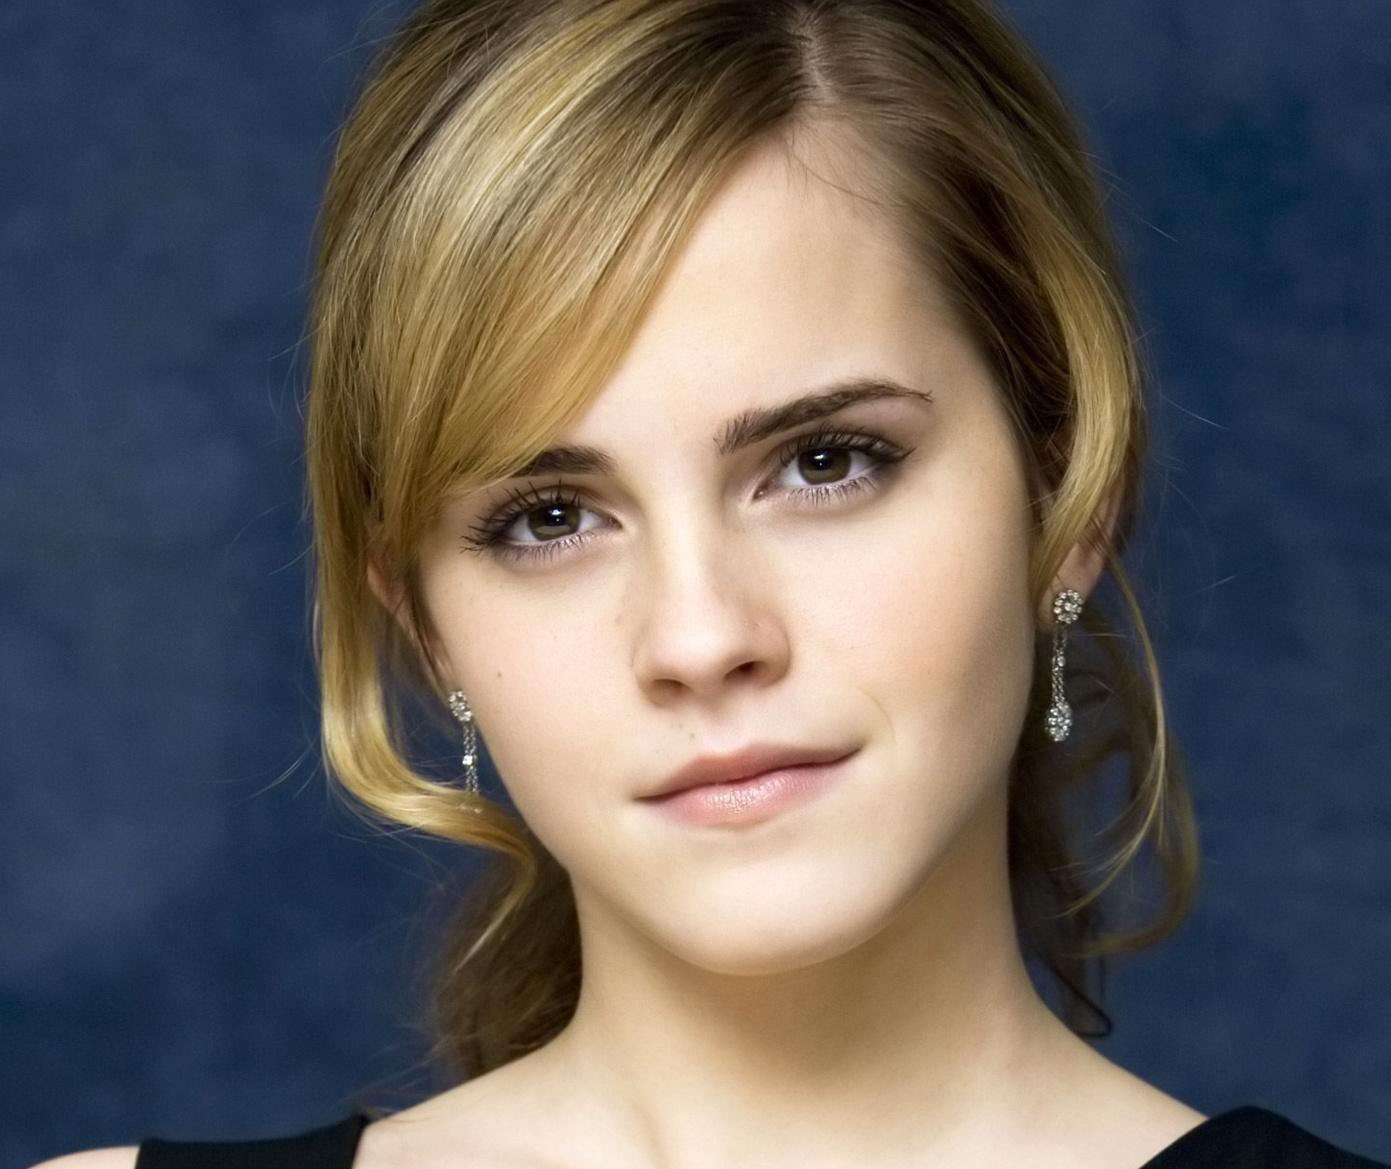 http://3.bp.blogspot.com/-rJH5xj4BaSM/TyUkDi-CciI/AAAAAAAABcQ/ocktdqk8s6w/s1600/The-best-top-desktop-emma-watson-wallpapers-emma-watson-wallpaper-hd-16.jpg